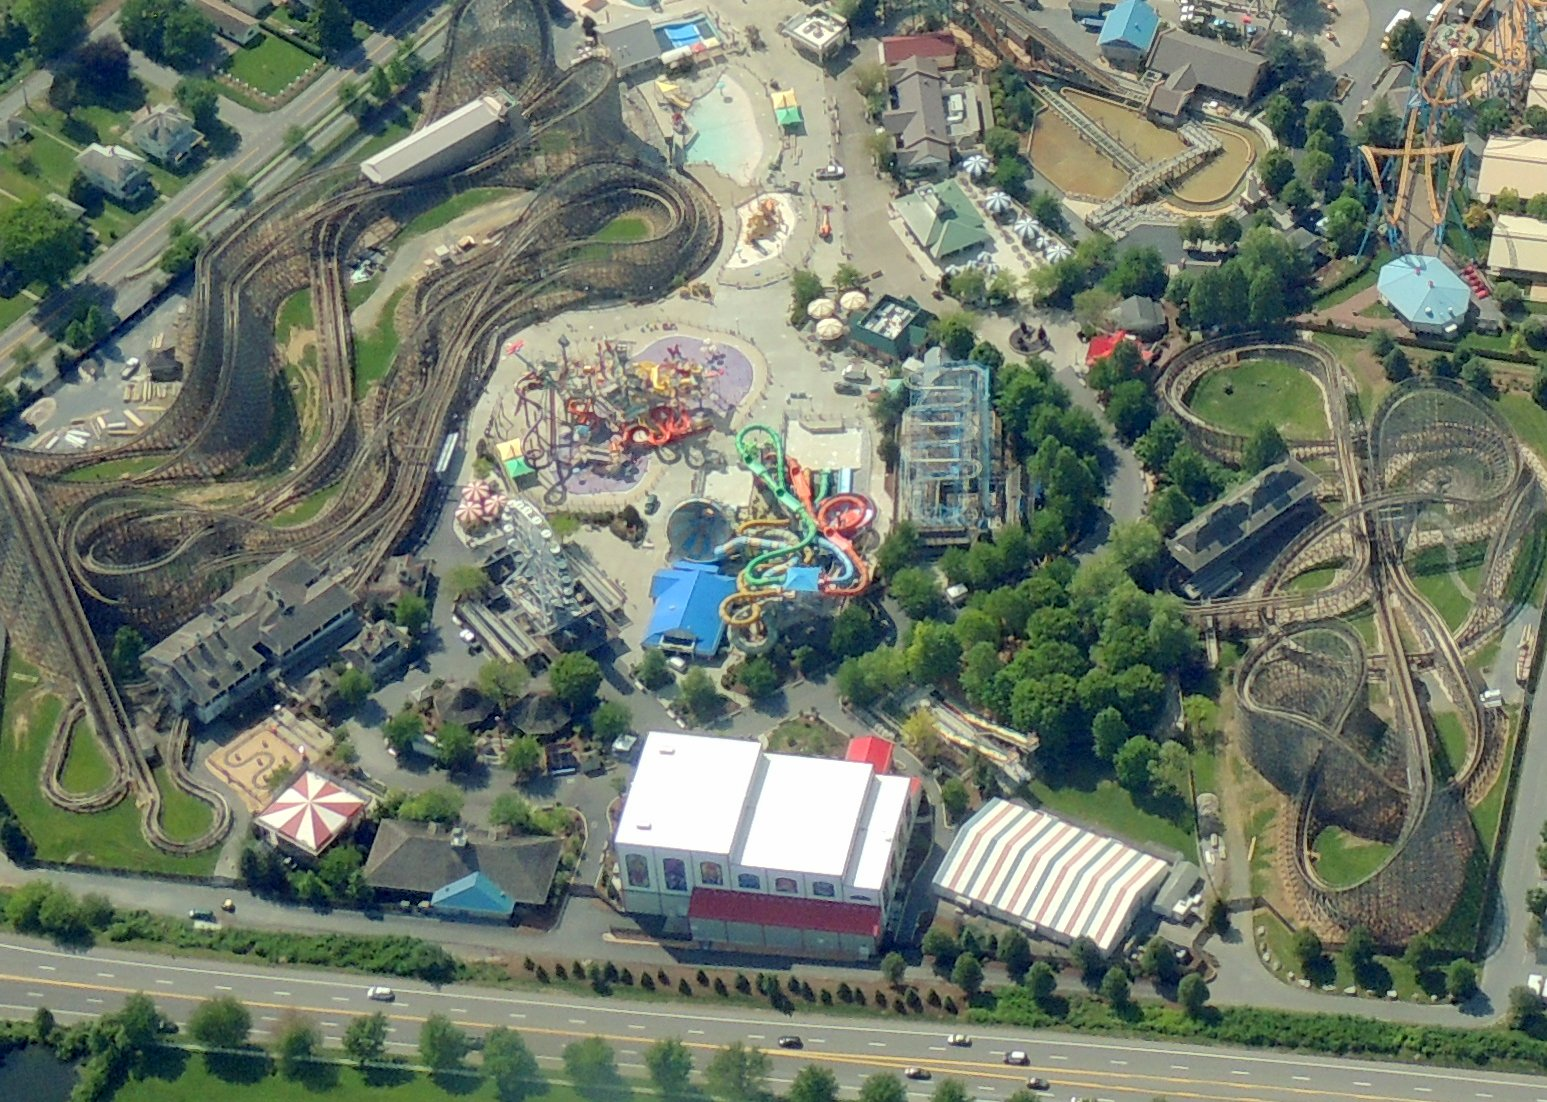 The ultimate ride .........   (In a airplane looking down at Hershey Park PA !)